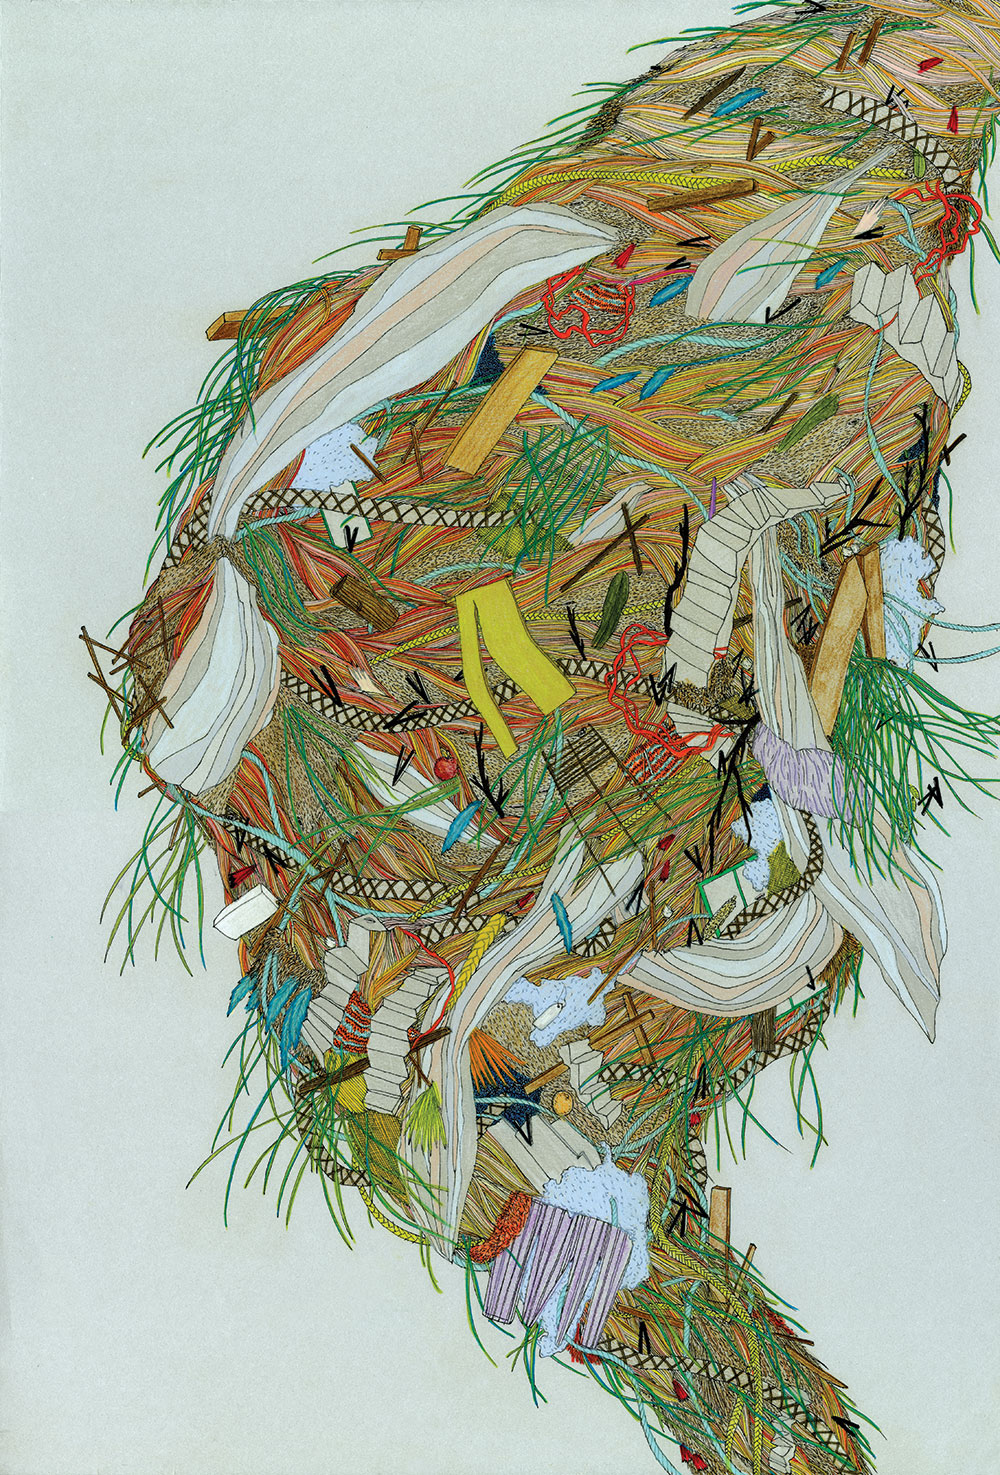 """Pattie Lee Becker, What I Thought Was Once-Mine is Now Ours, 15"""" x 22"""", 2011"""